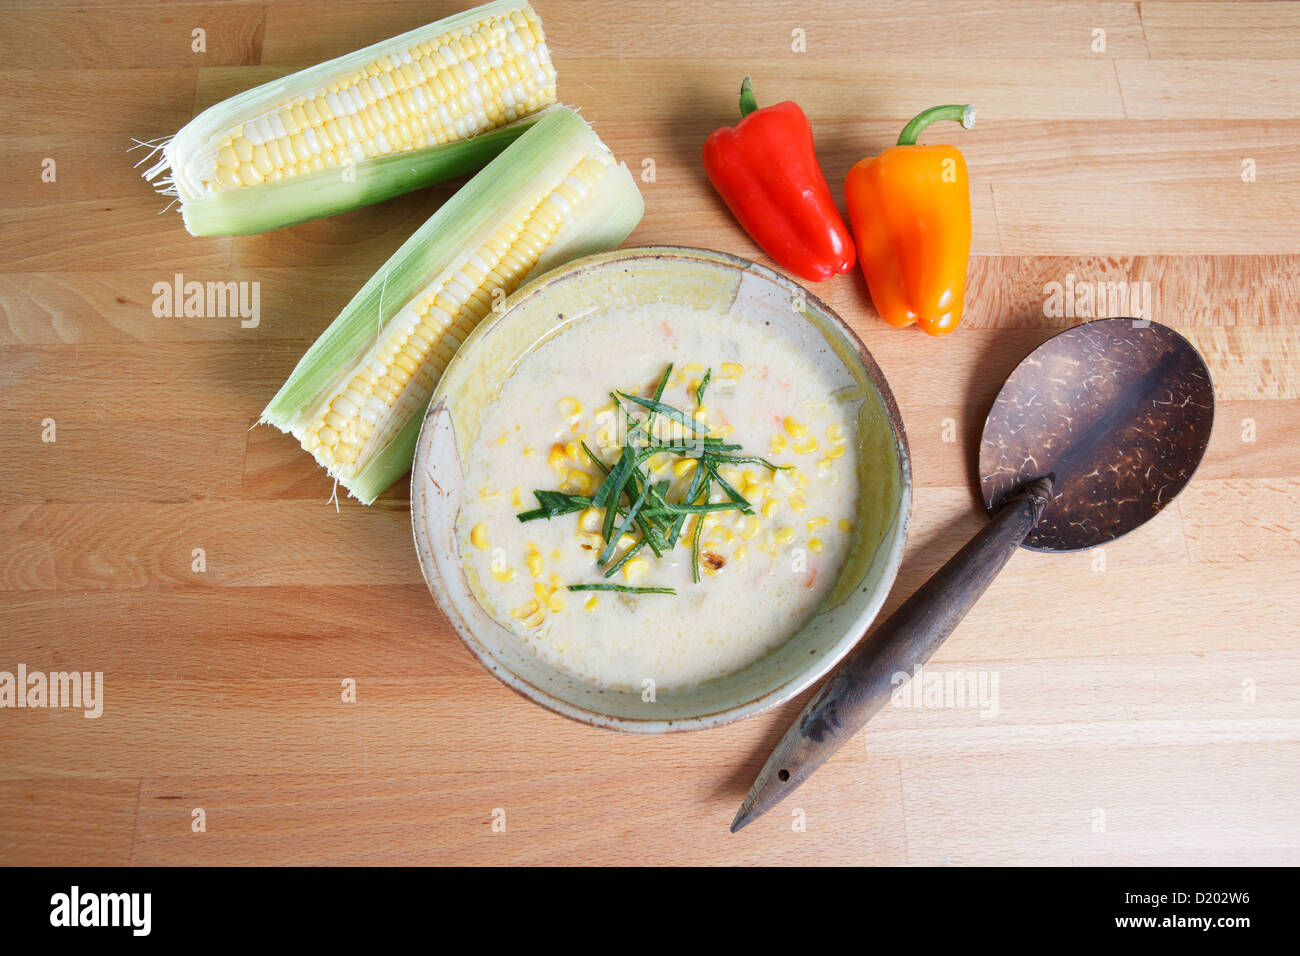 Southwestern Style Corn chowder soup garnished with whole ears of corn and colorful bell peppers - Stock Image